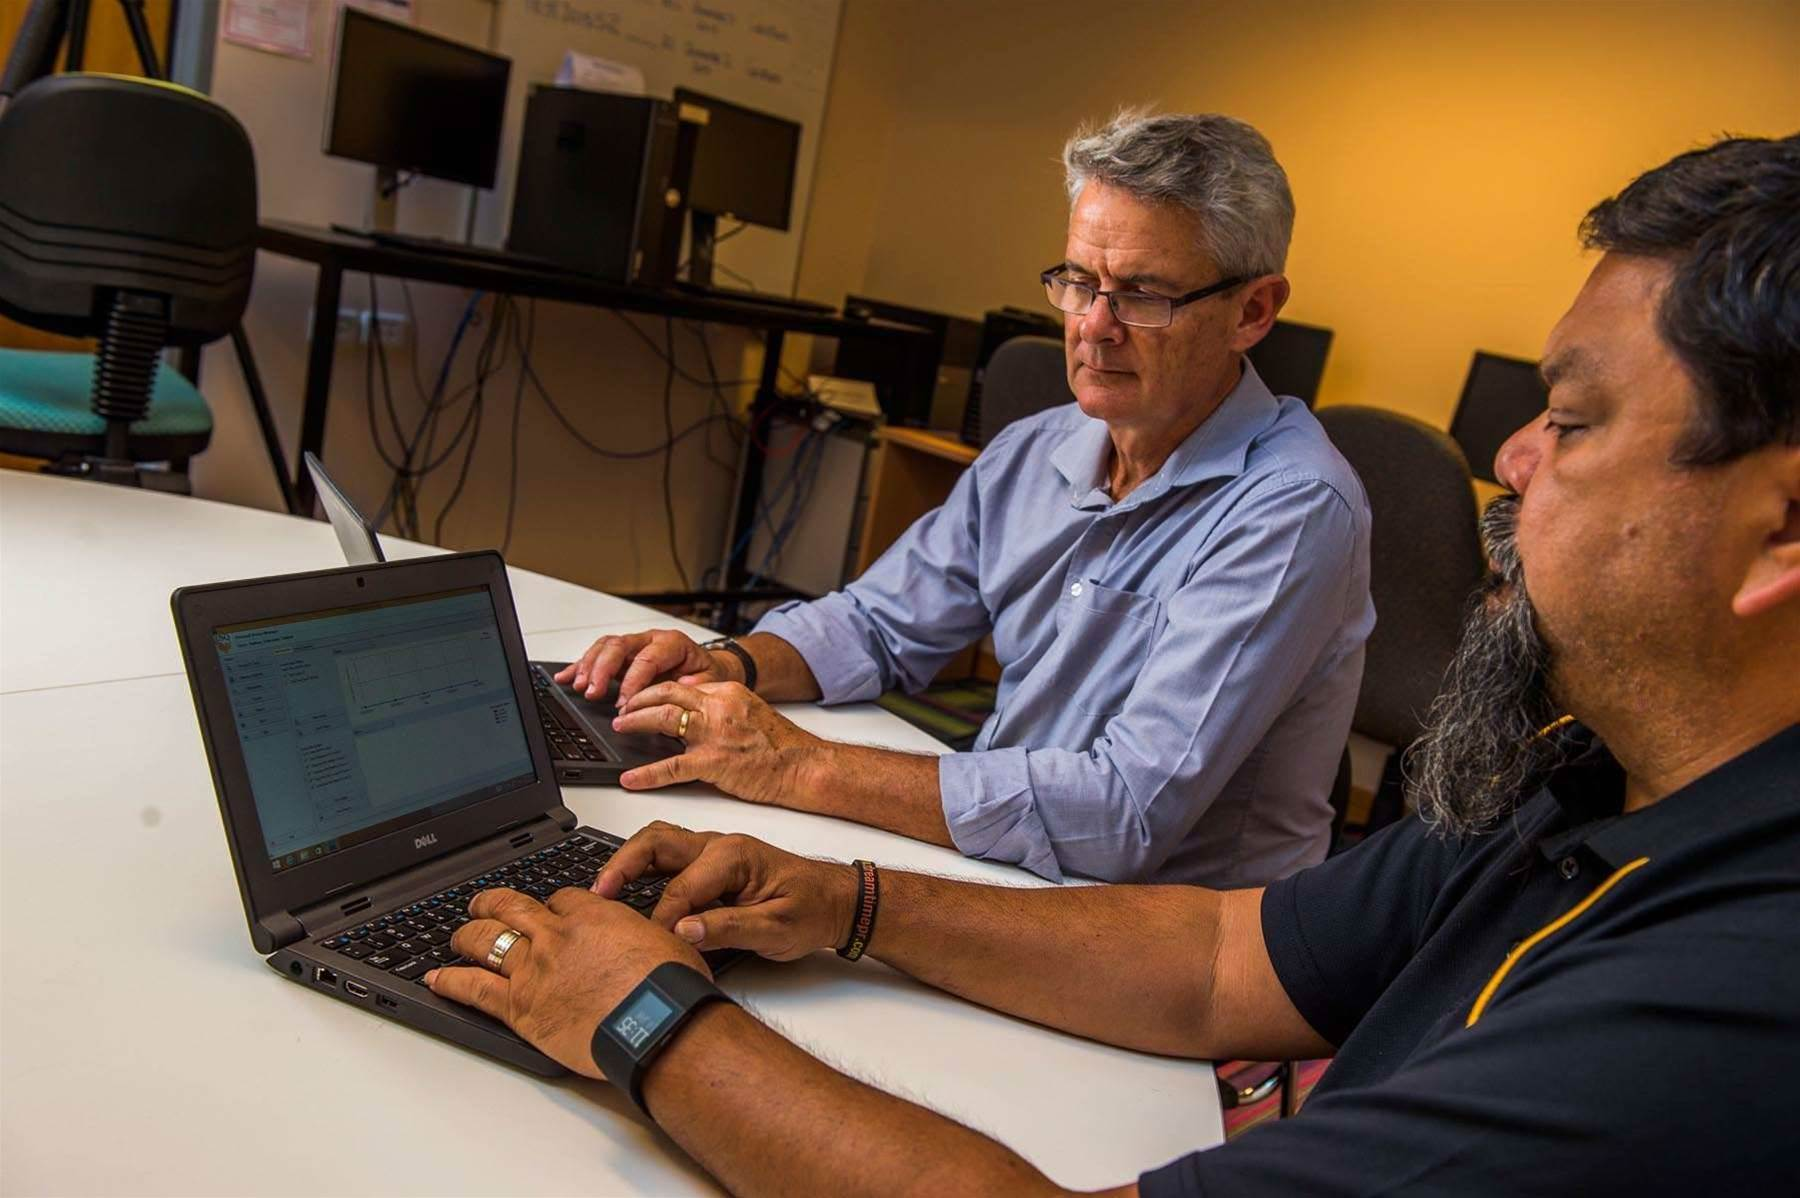 How USQ brought digital learning to prisoners